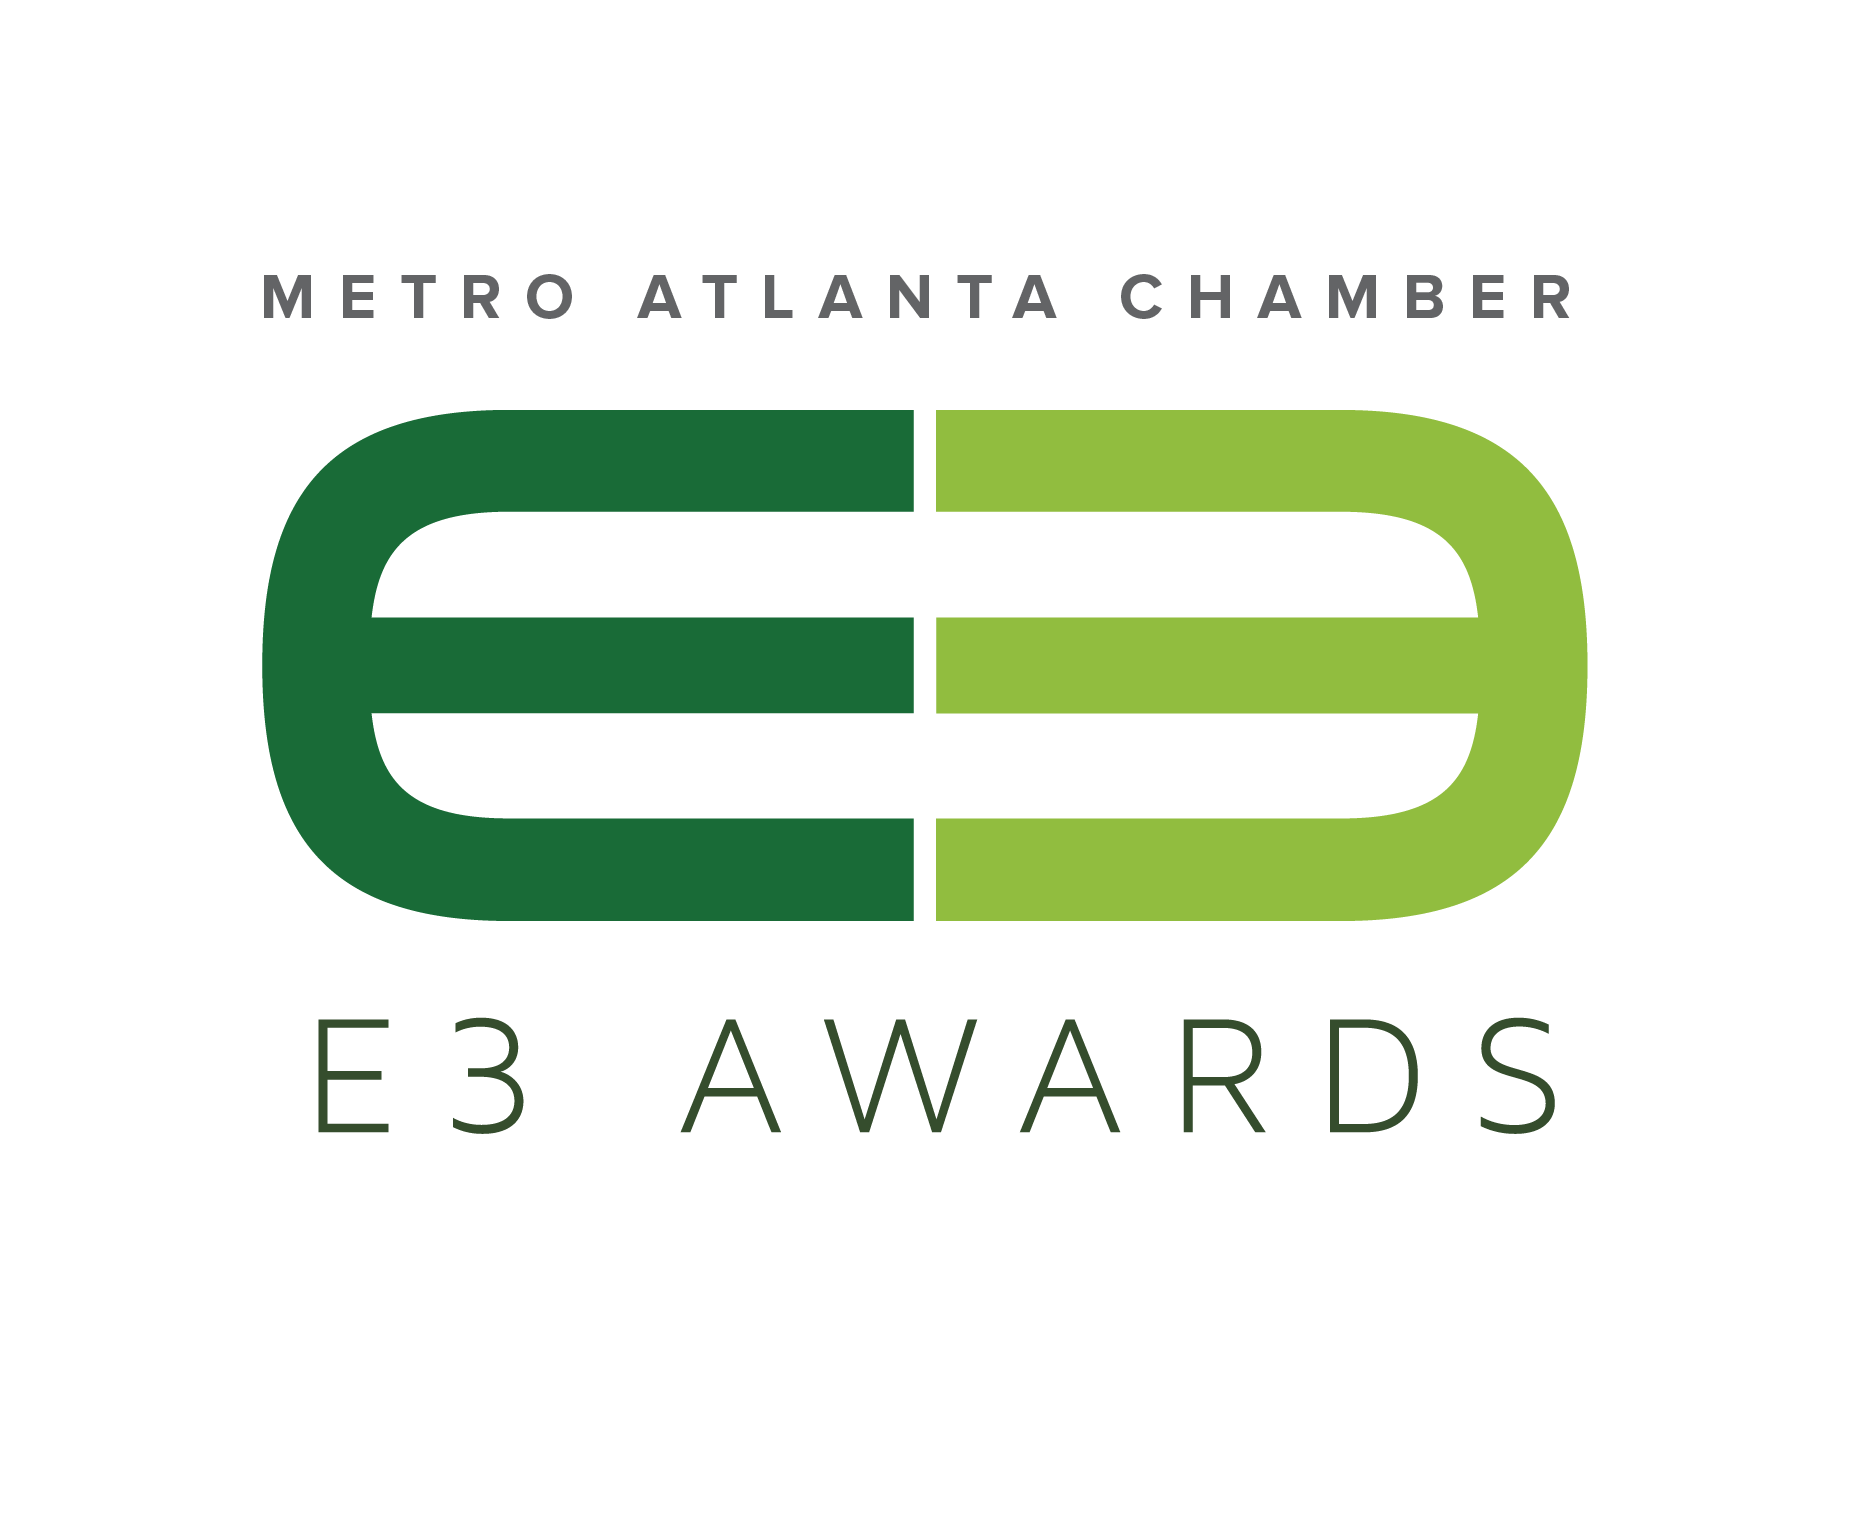 2017_e3_awards_logo-01.png